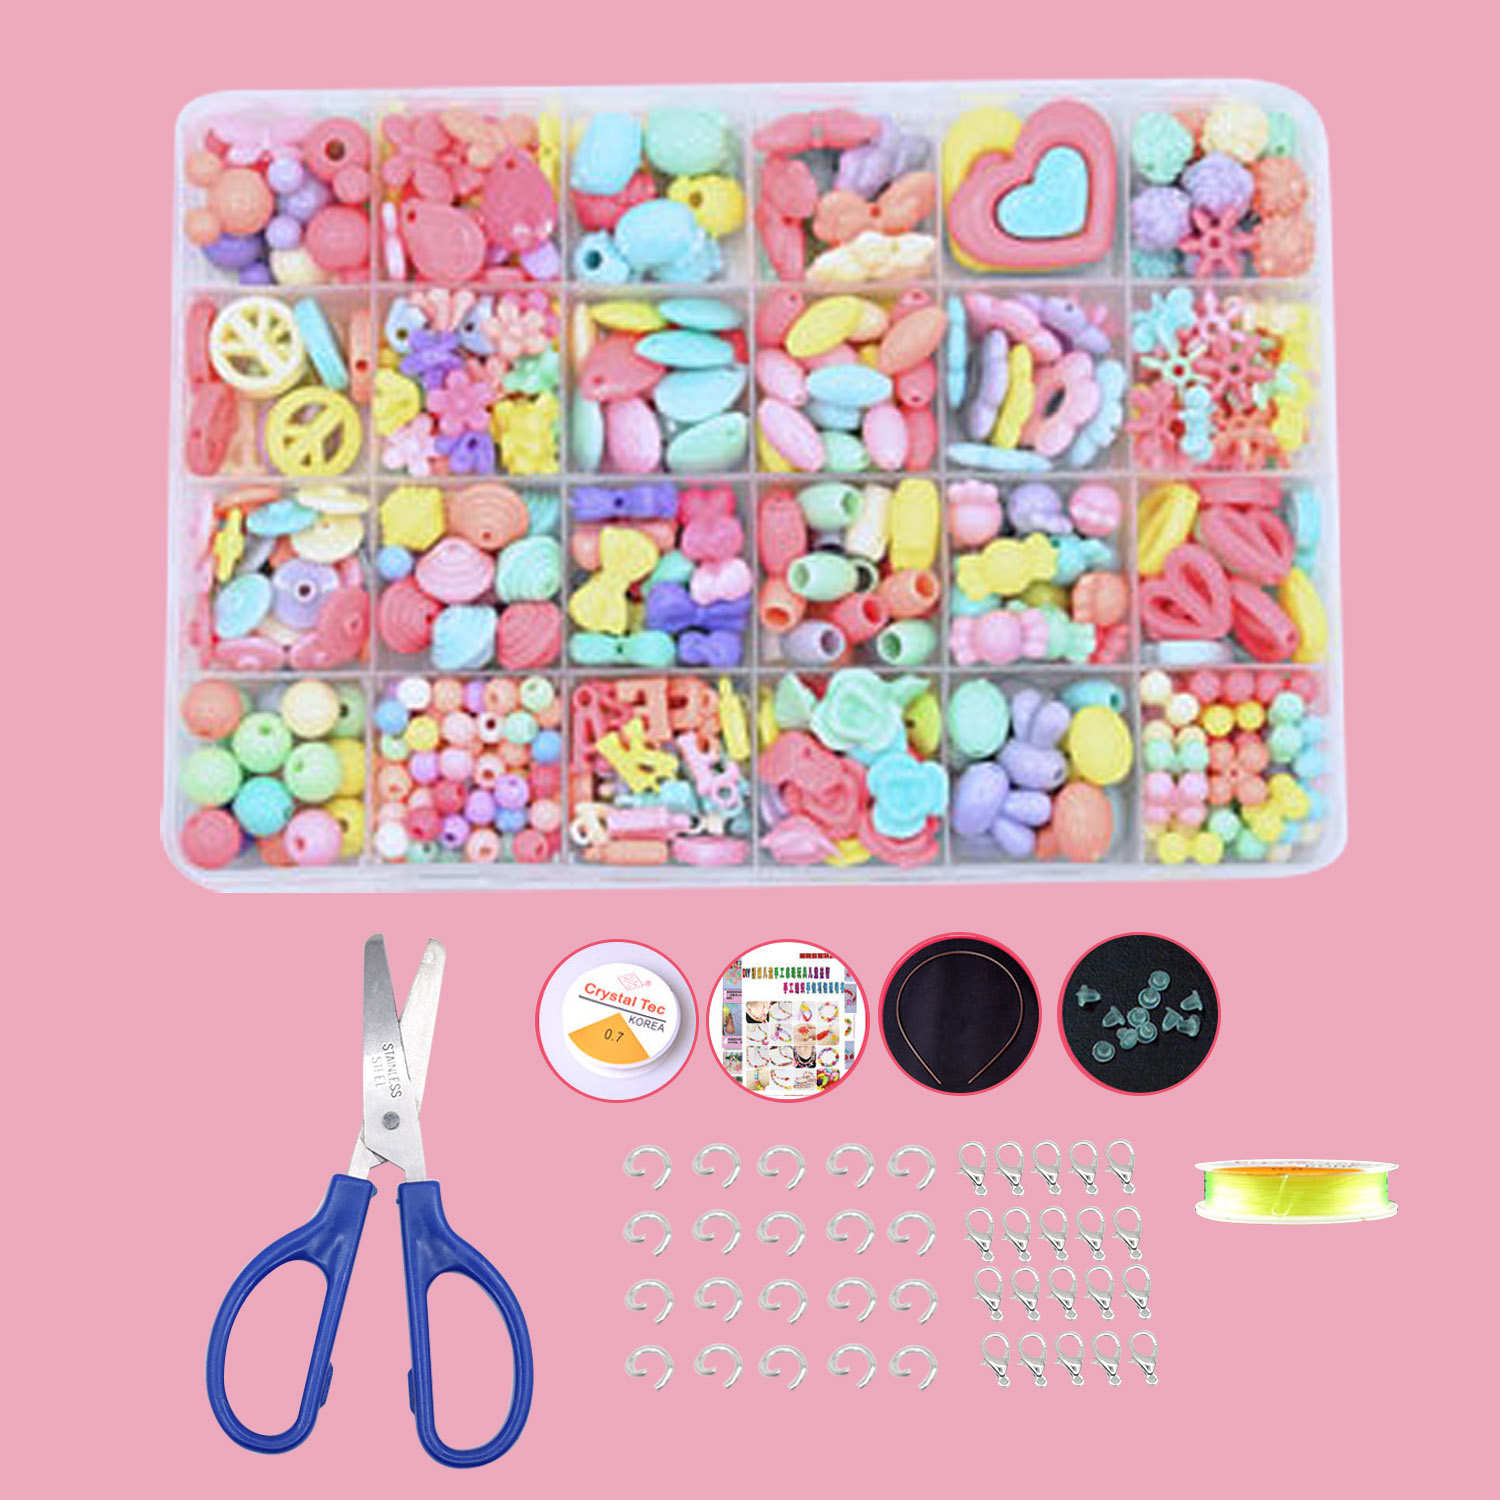 479Pcs 24 Different Types Acrylic Fashion Cute DIY Beads Set Kit Toys Gifts Kids Children Girl Adults Bracelet Necklace Making